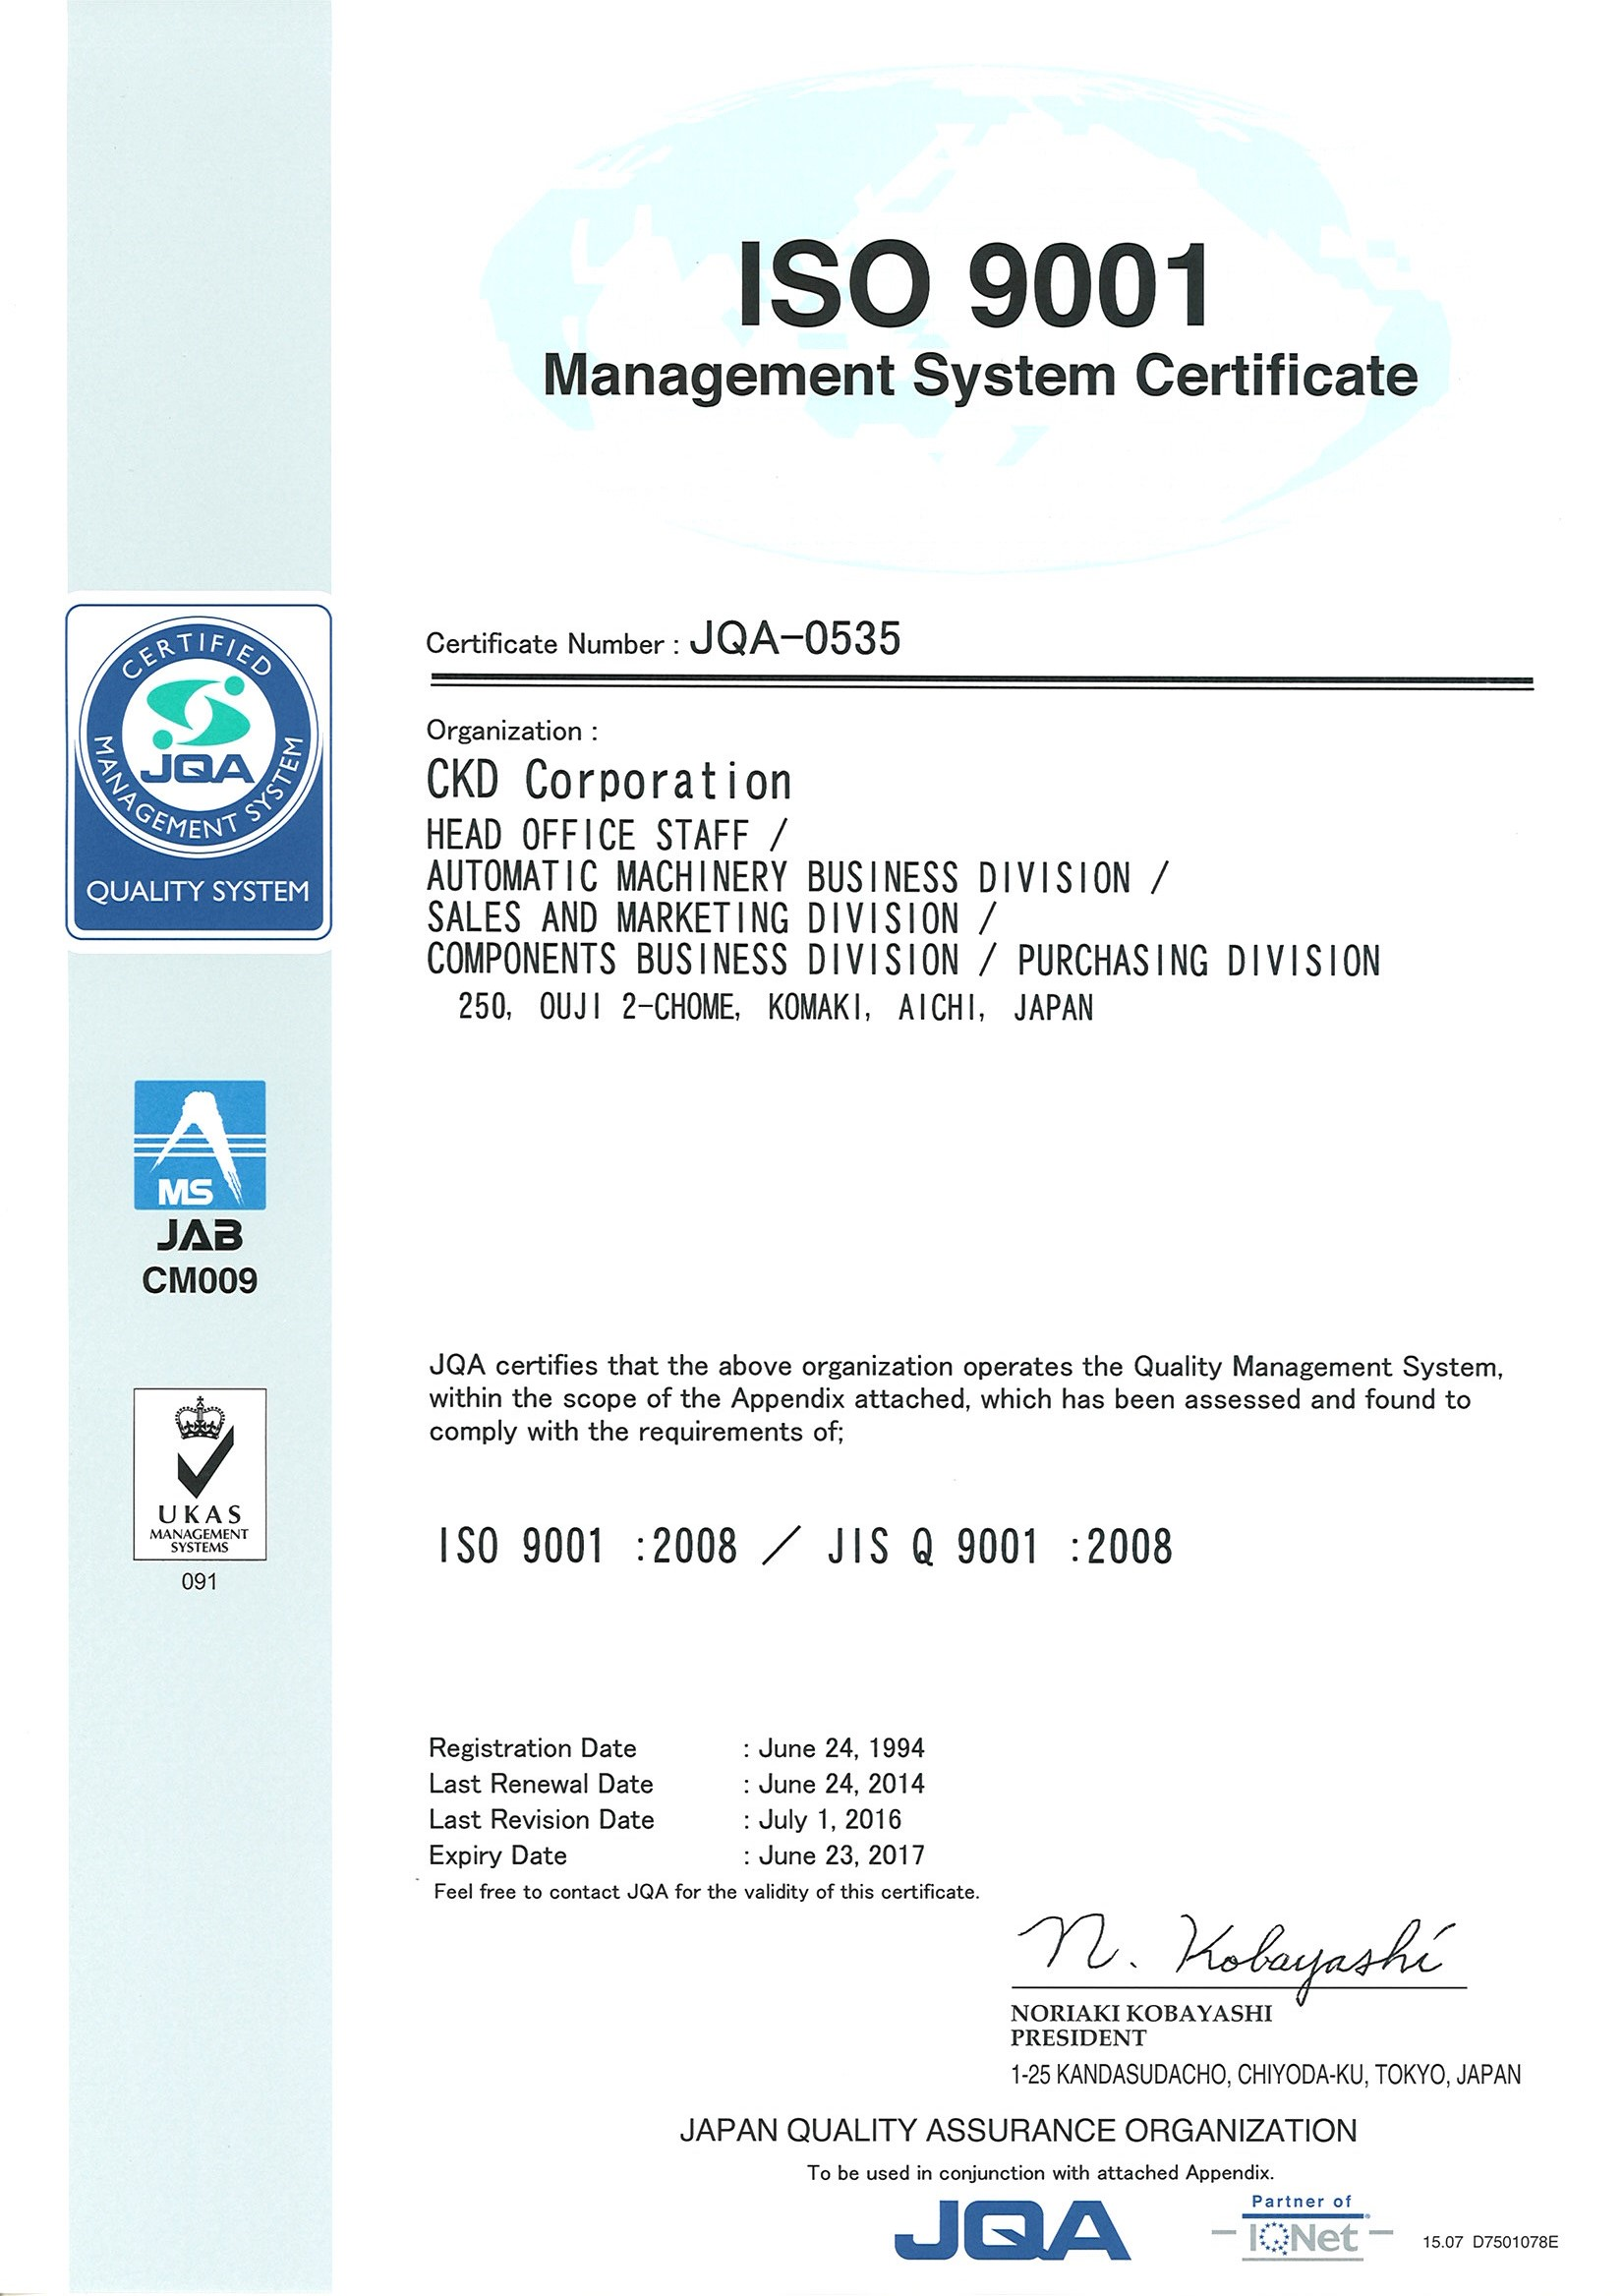 ISO9001 Log Book